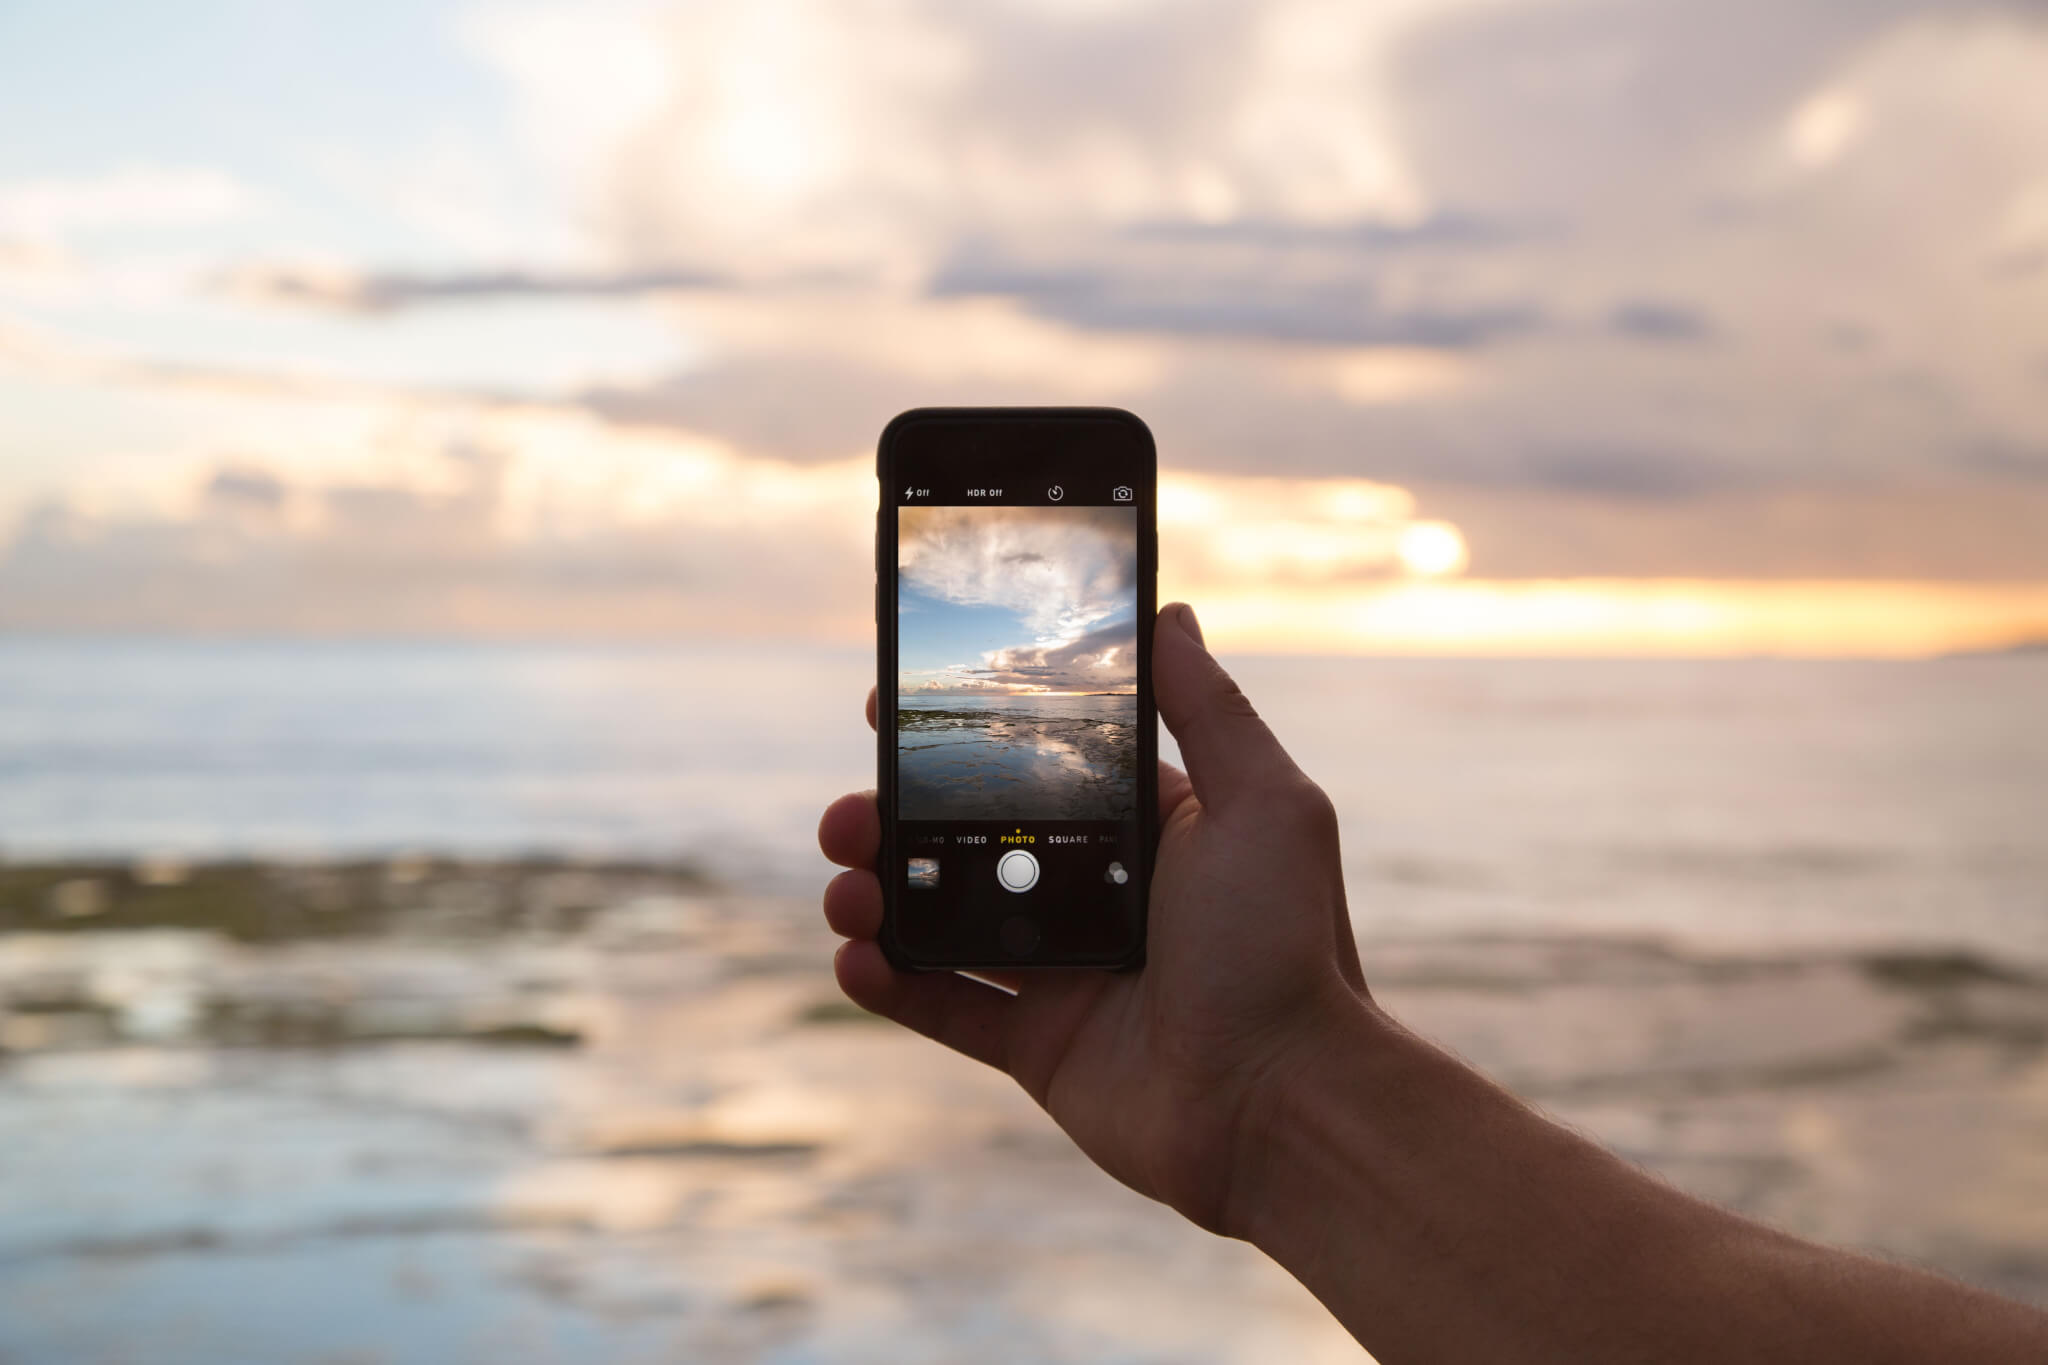 a hand holding a smartphone taking a picture of the sea